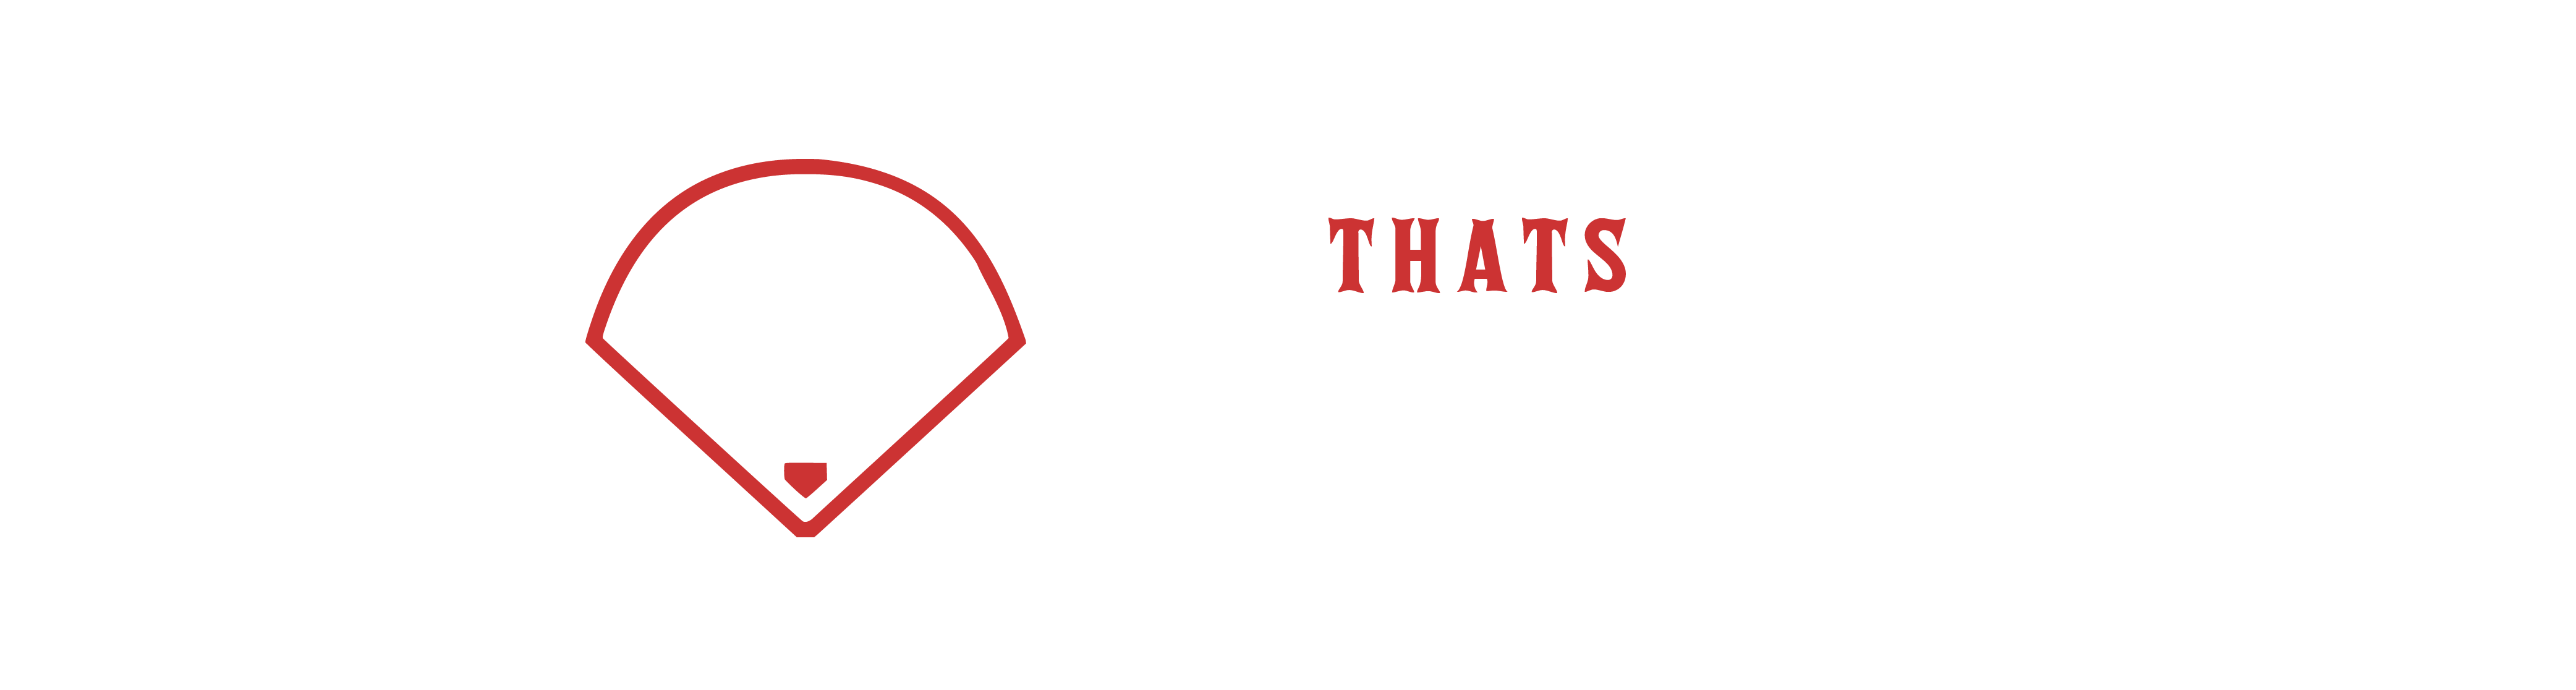 ThatsBaseball.com MLB The Show 2021 League